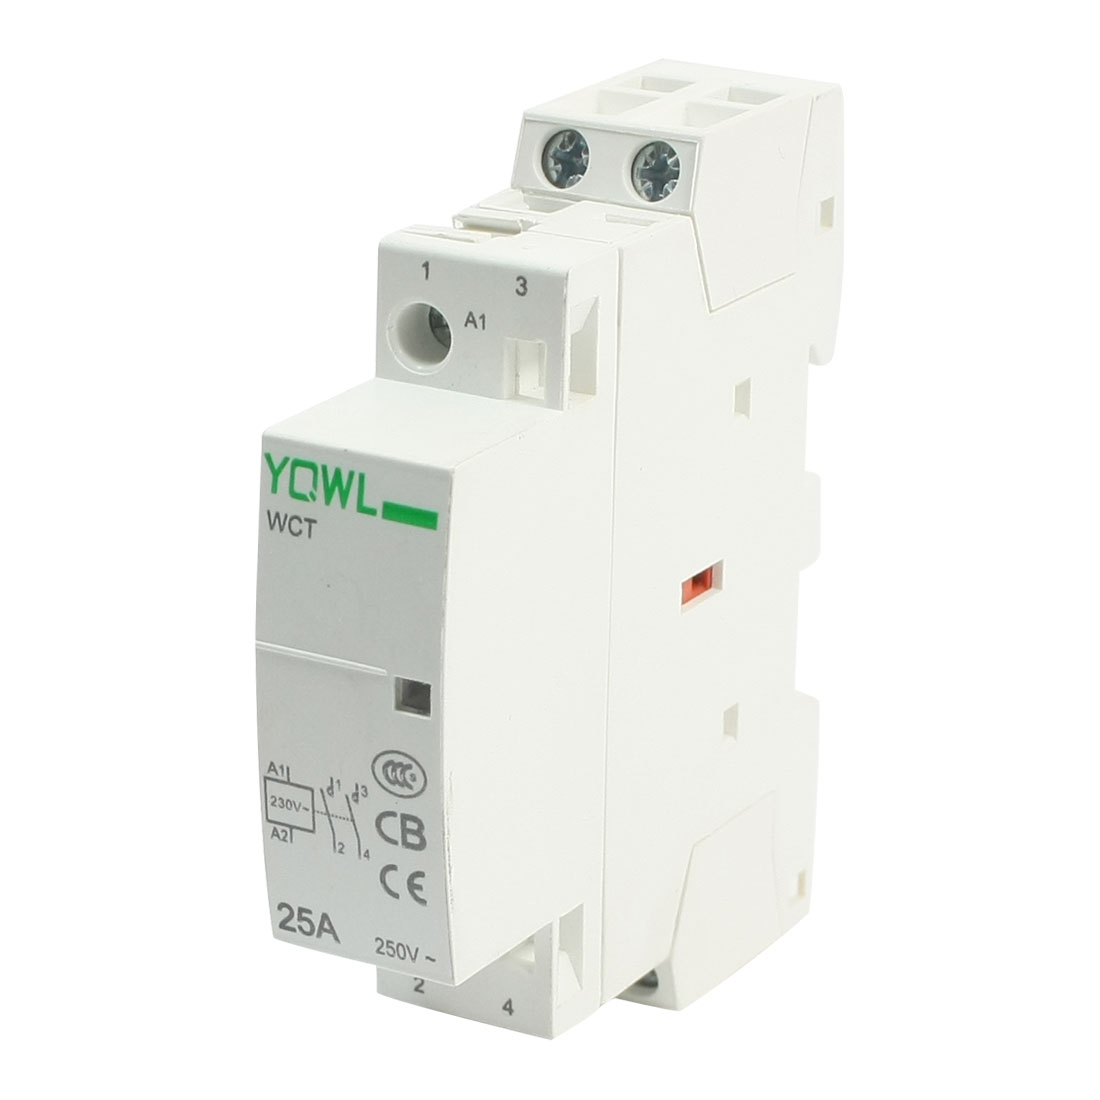 AC220-240V Coil Voltage 35mm DIN Rail Mount 2-Pole Universal Purpose Household Contactor Family Modular 25Amp